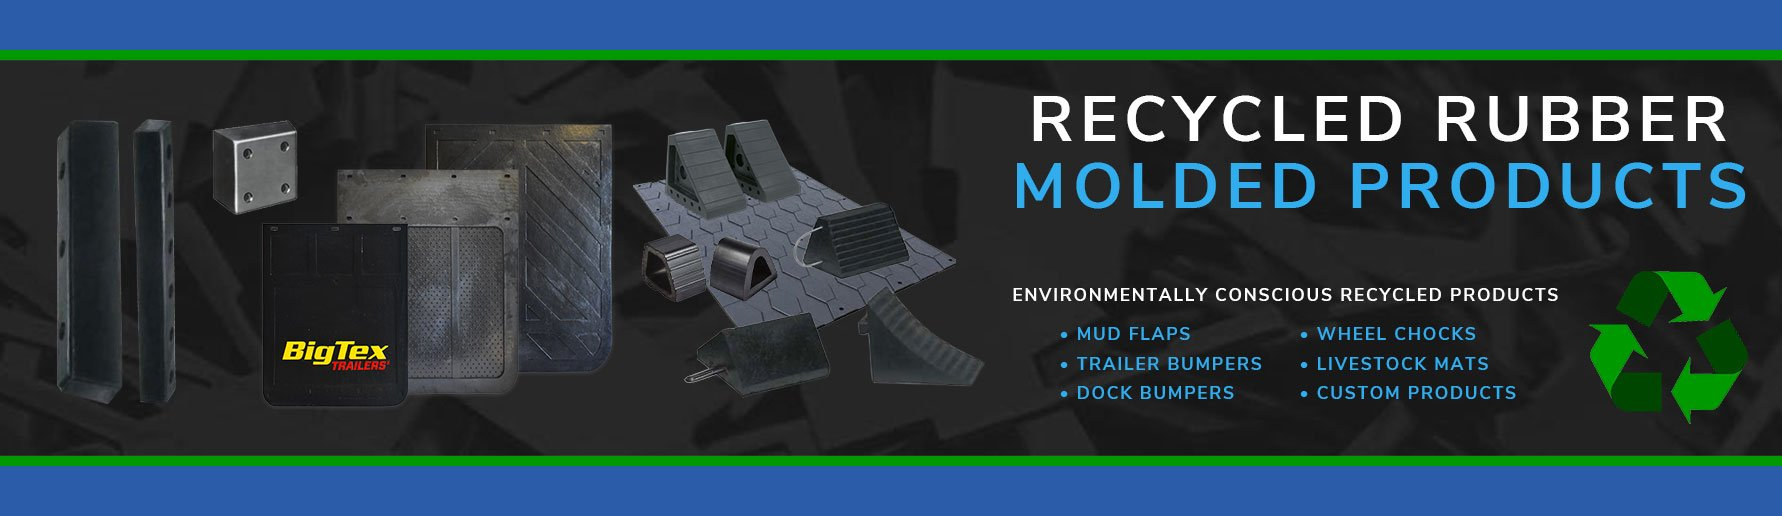 Recycled Rubber Molded Products